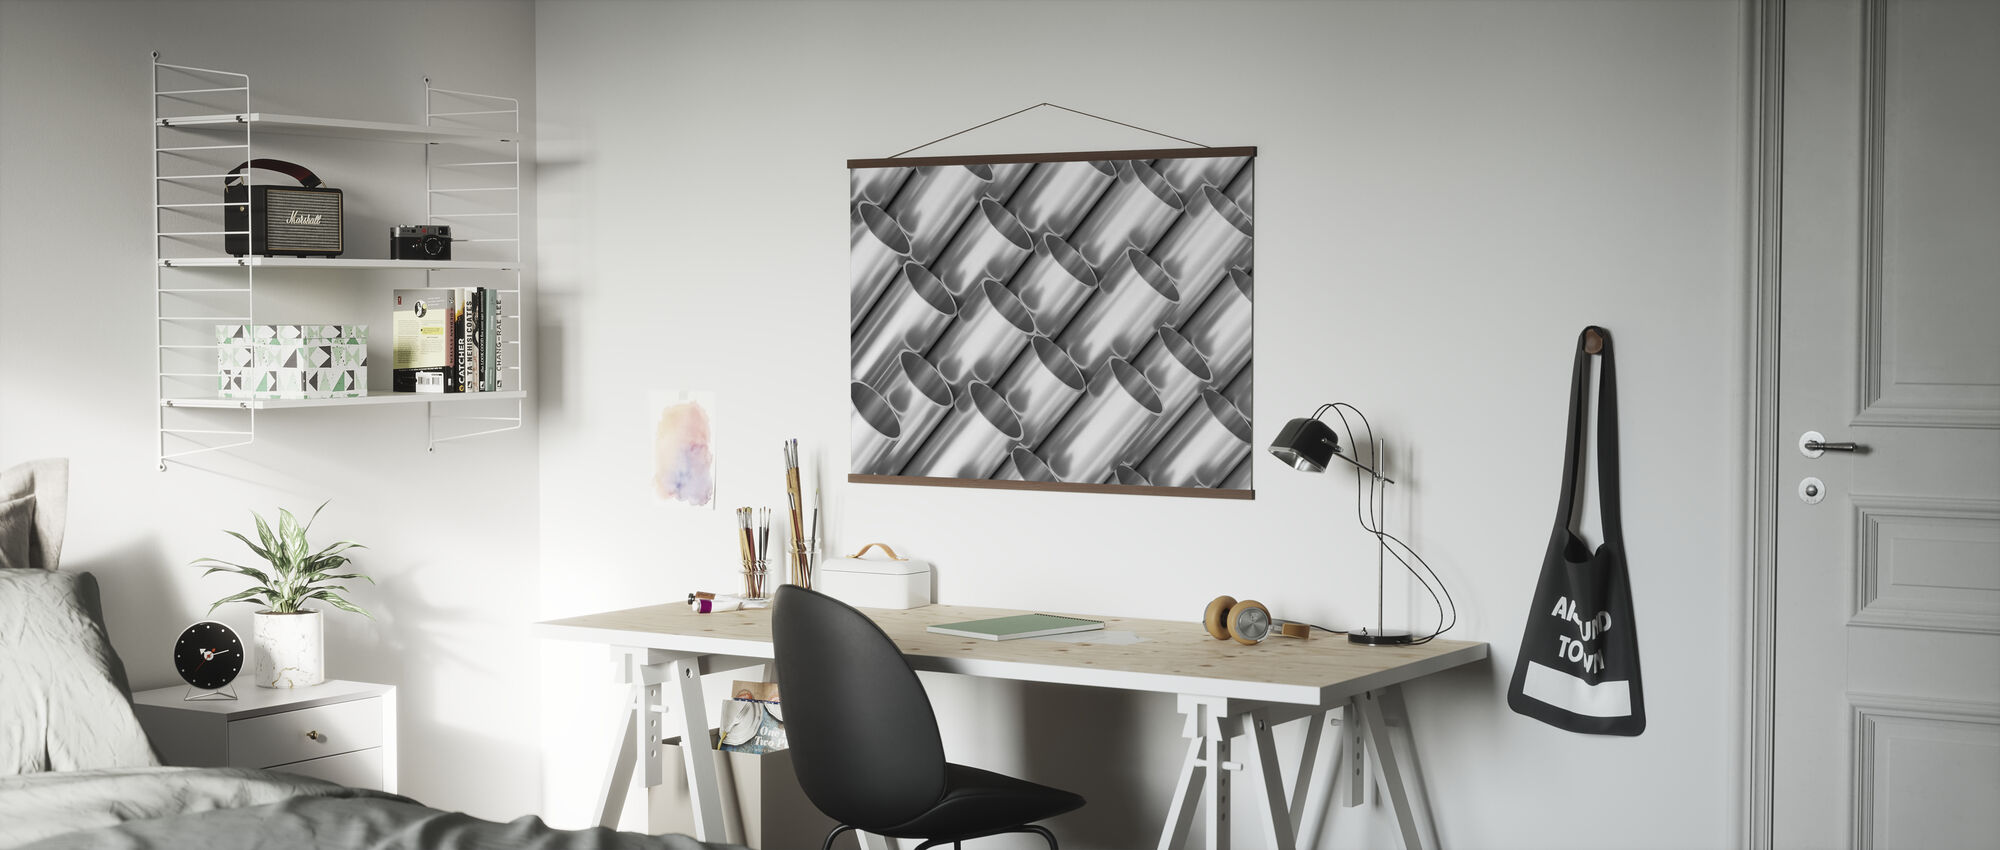 Metal Pipes - Poster - Office